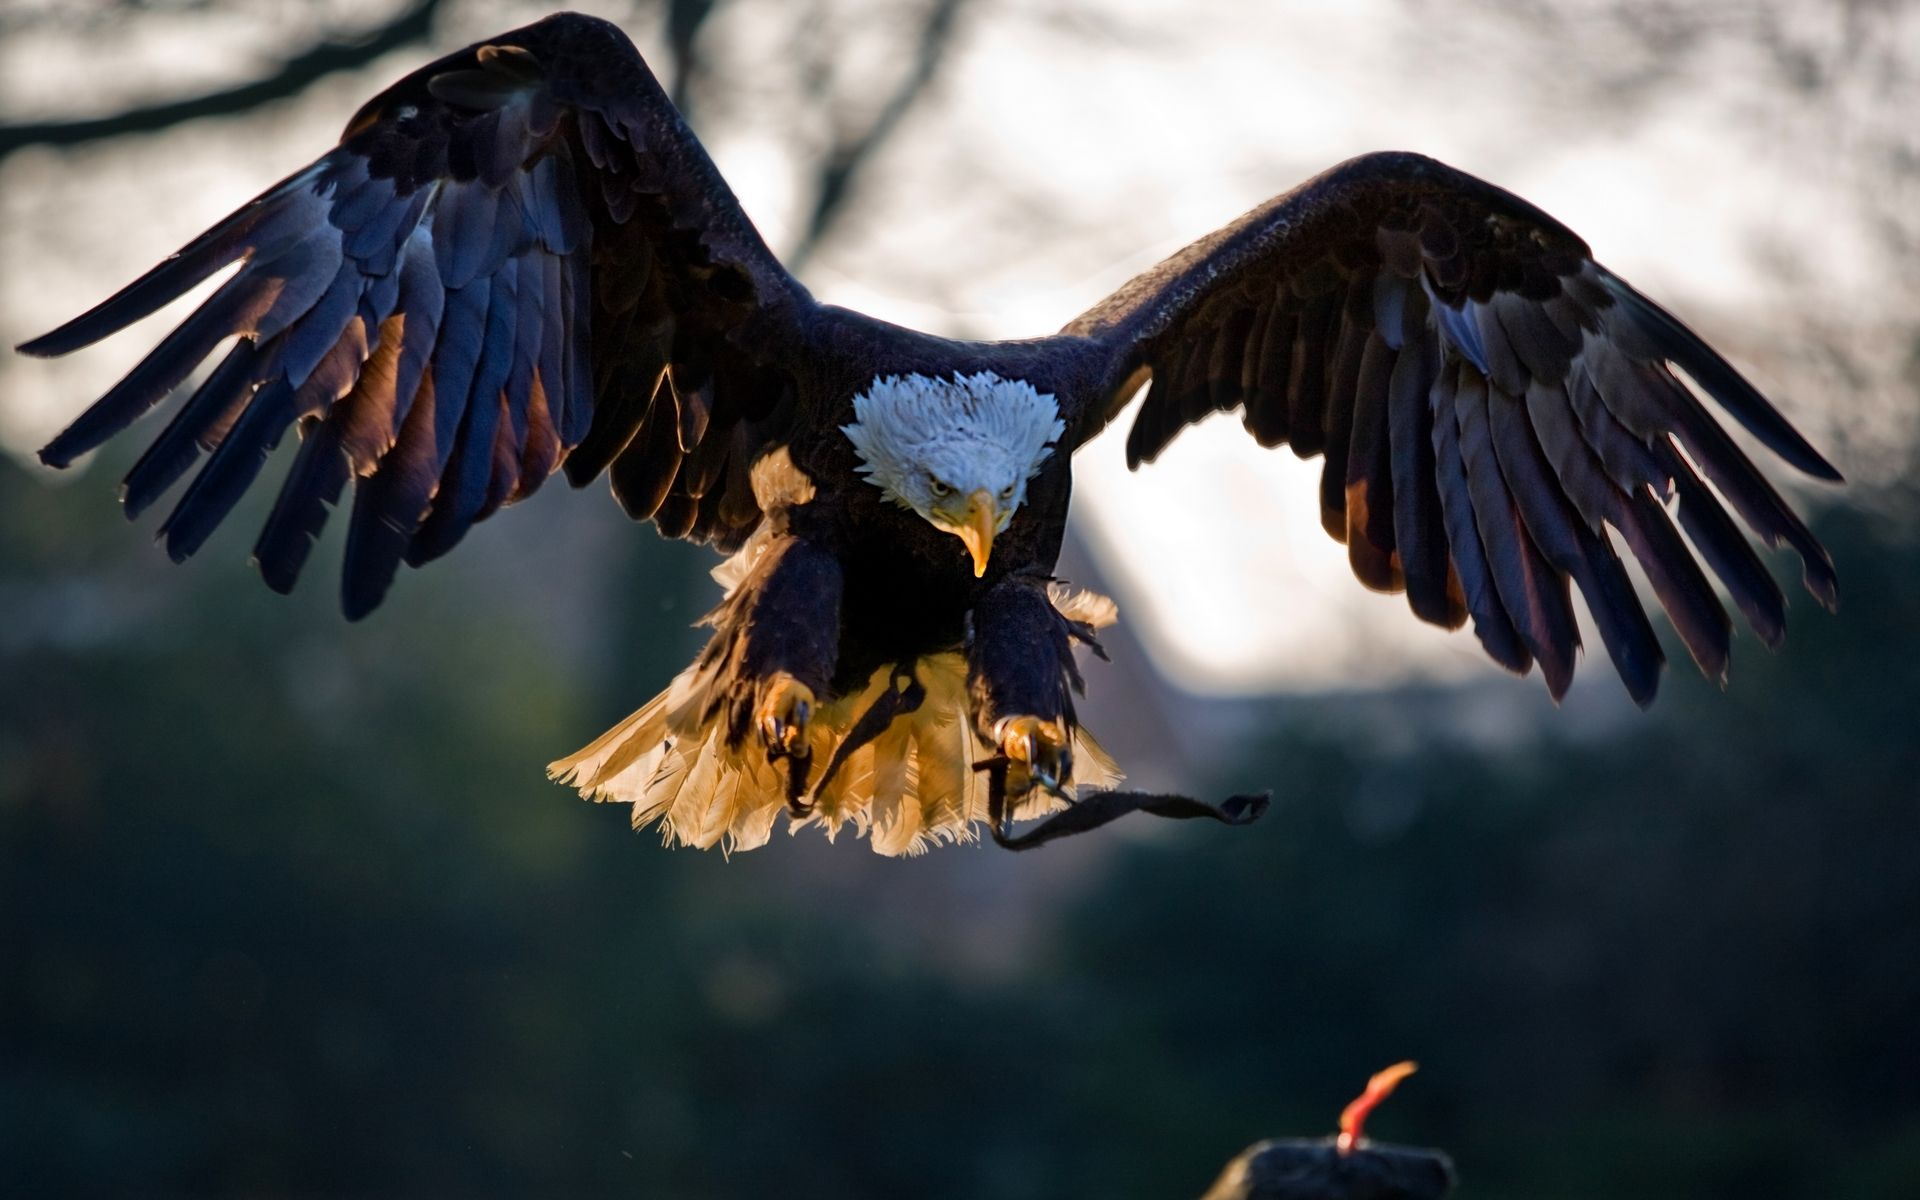 Hd wallpaper eagle - Top Eagle Hd Wallpaper Backgrounds Images Photos Free Download